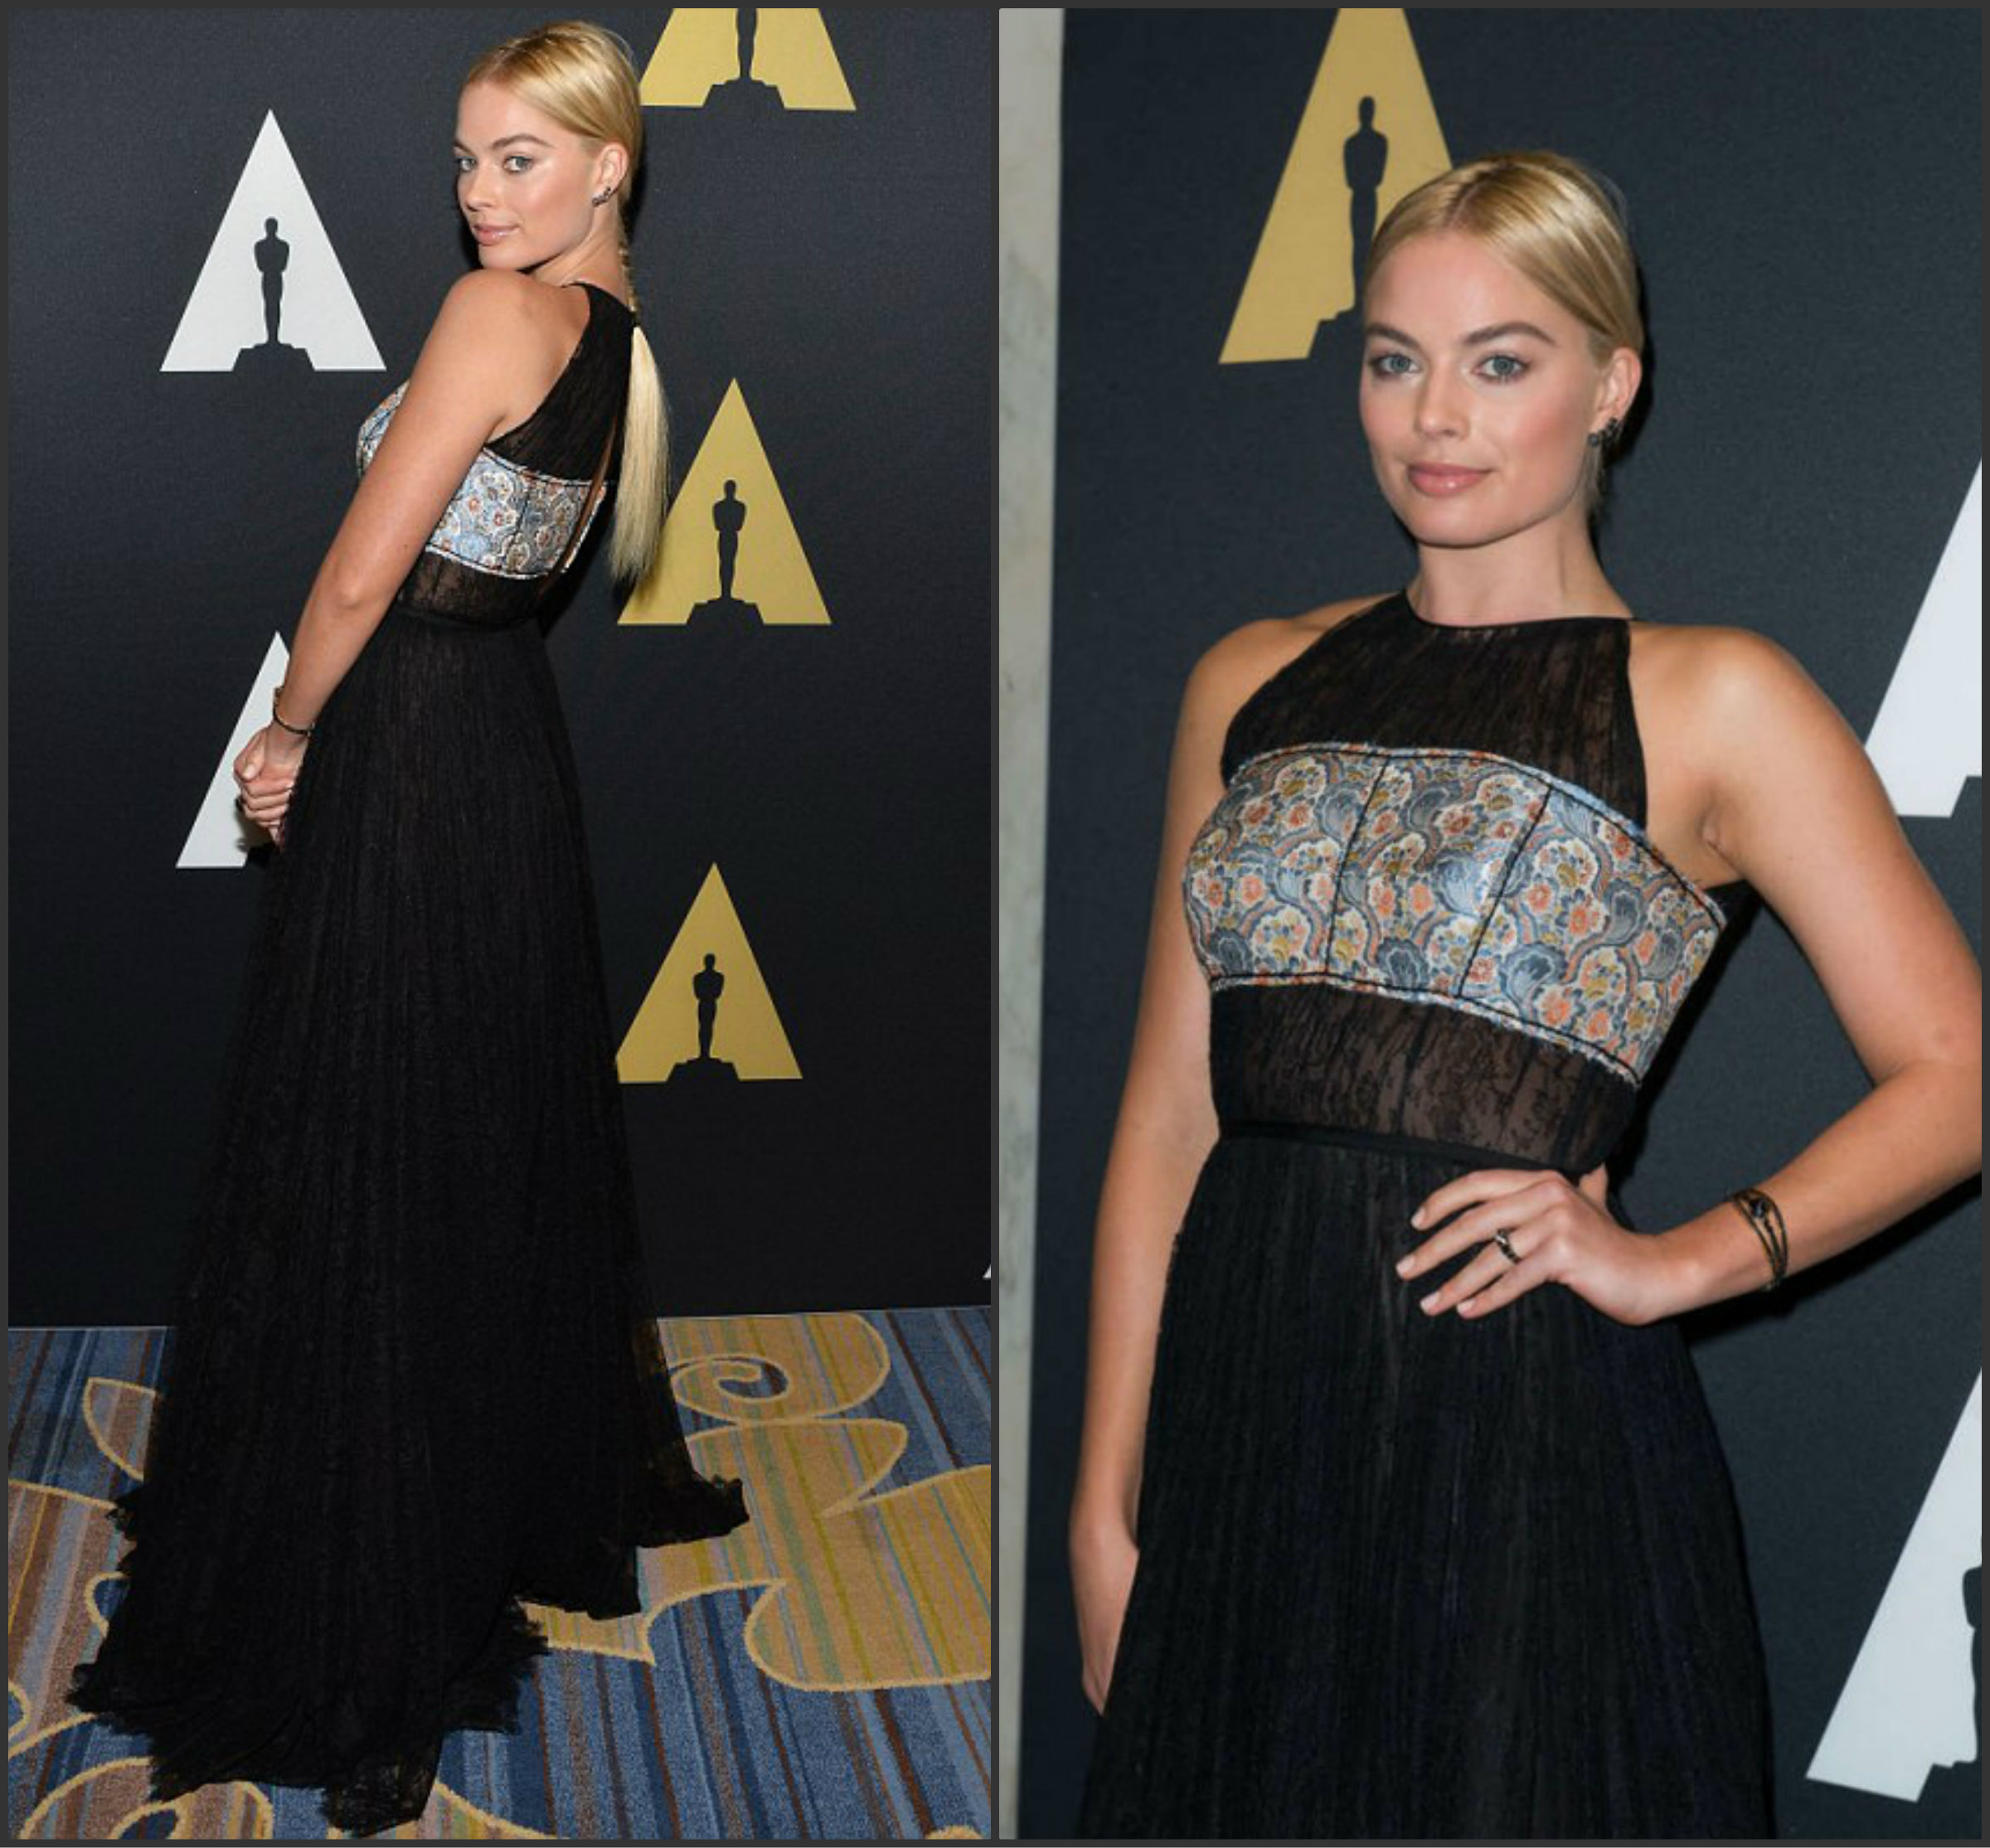 Margot-Robbie-In-Prada-Academy-Of-Motion-Picture-Arts-and-Science-Scientific-and-Technical-Awards-Ceremony